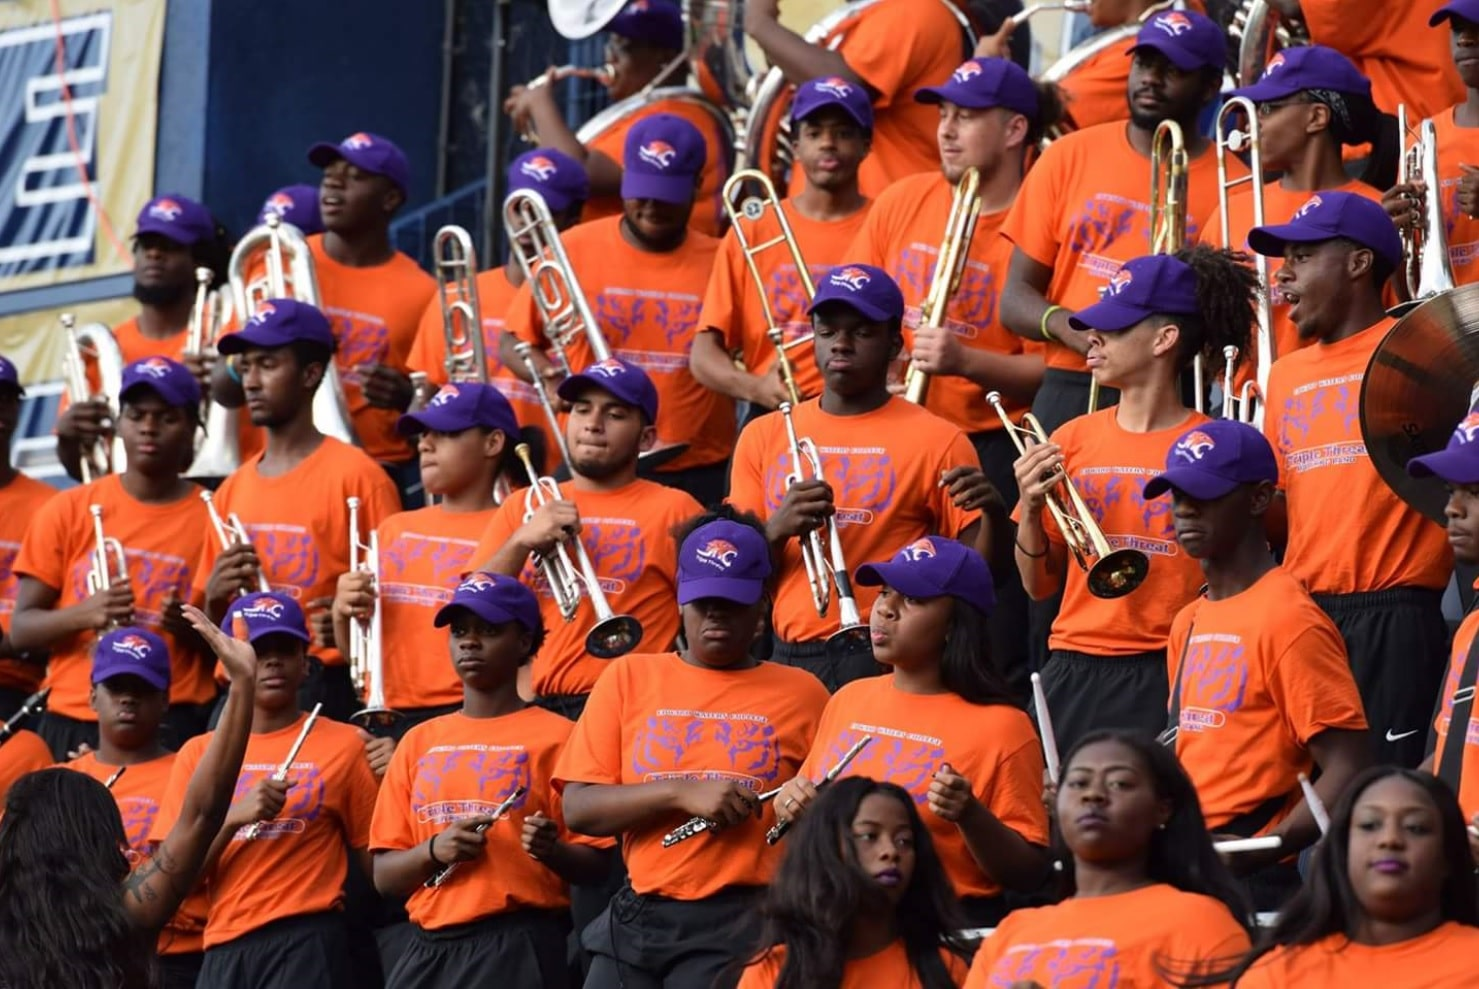 Edward Waters College Pep Band